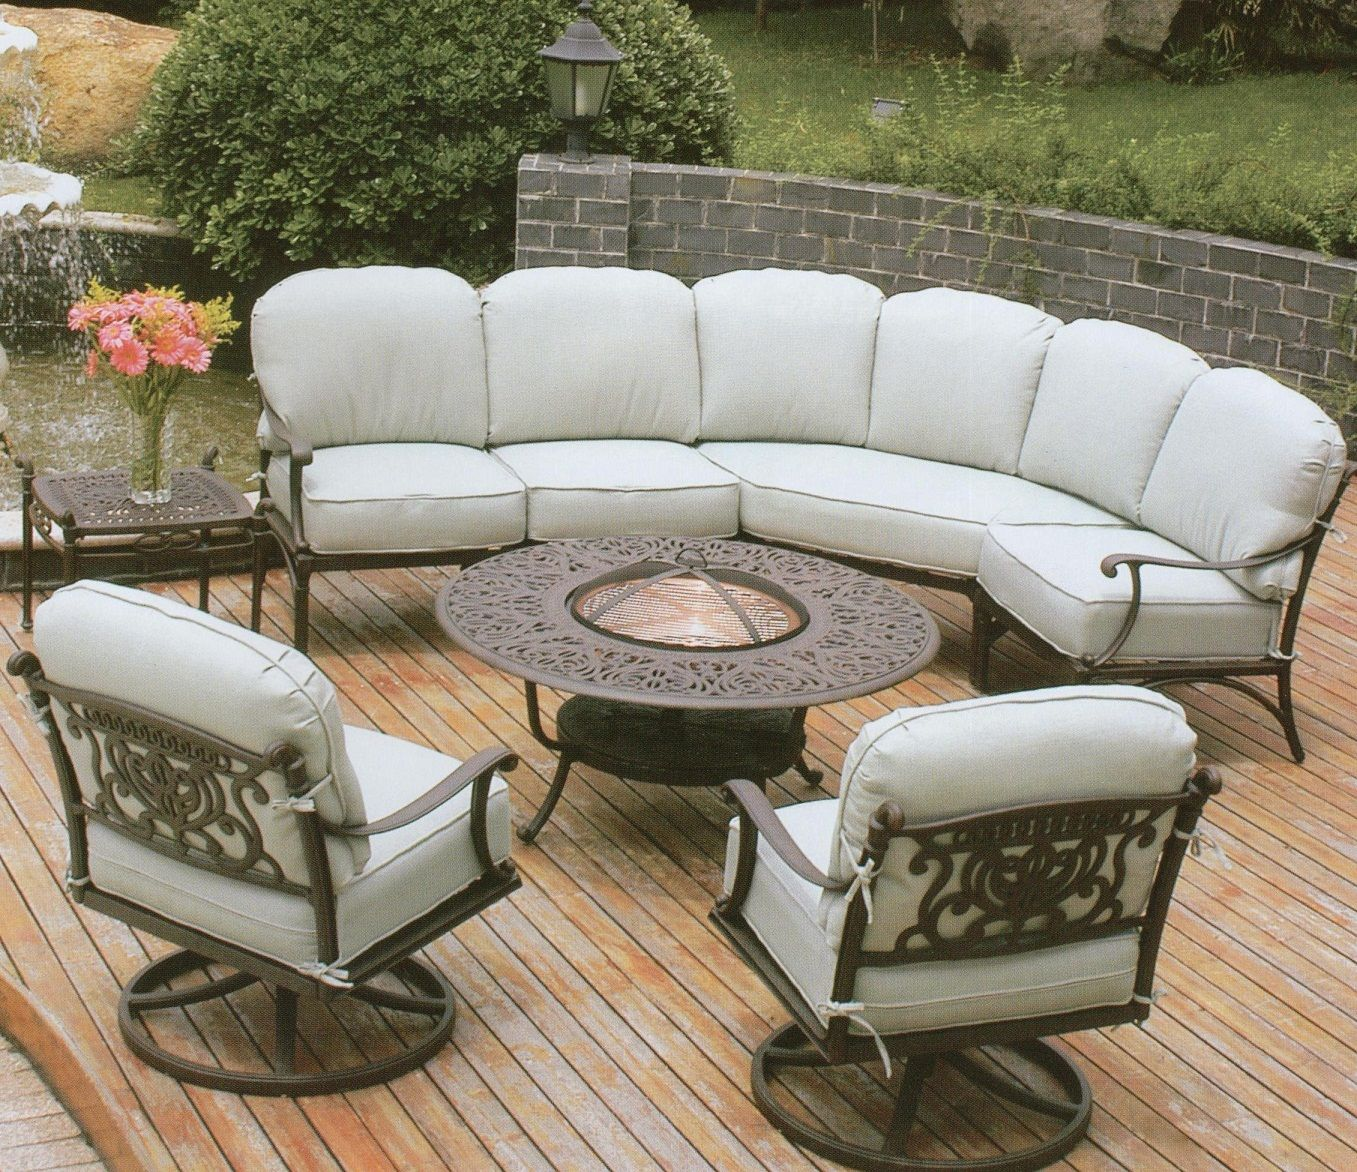 you cleaner aluminum fading garden with full of design like cast clearance shop size sale furniture care patio